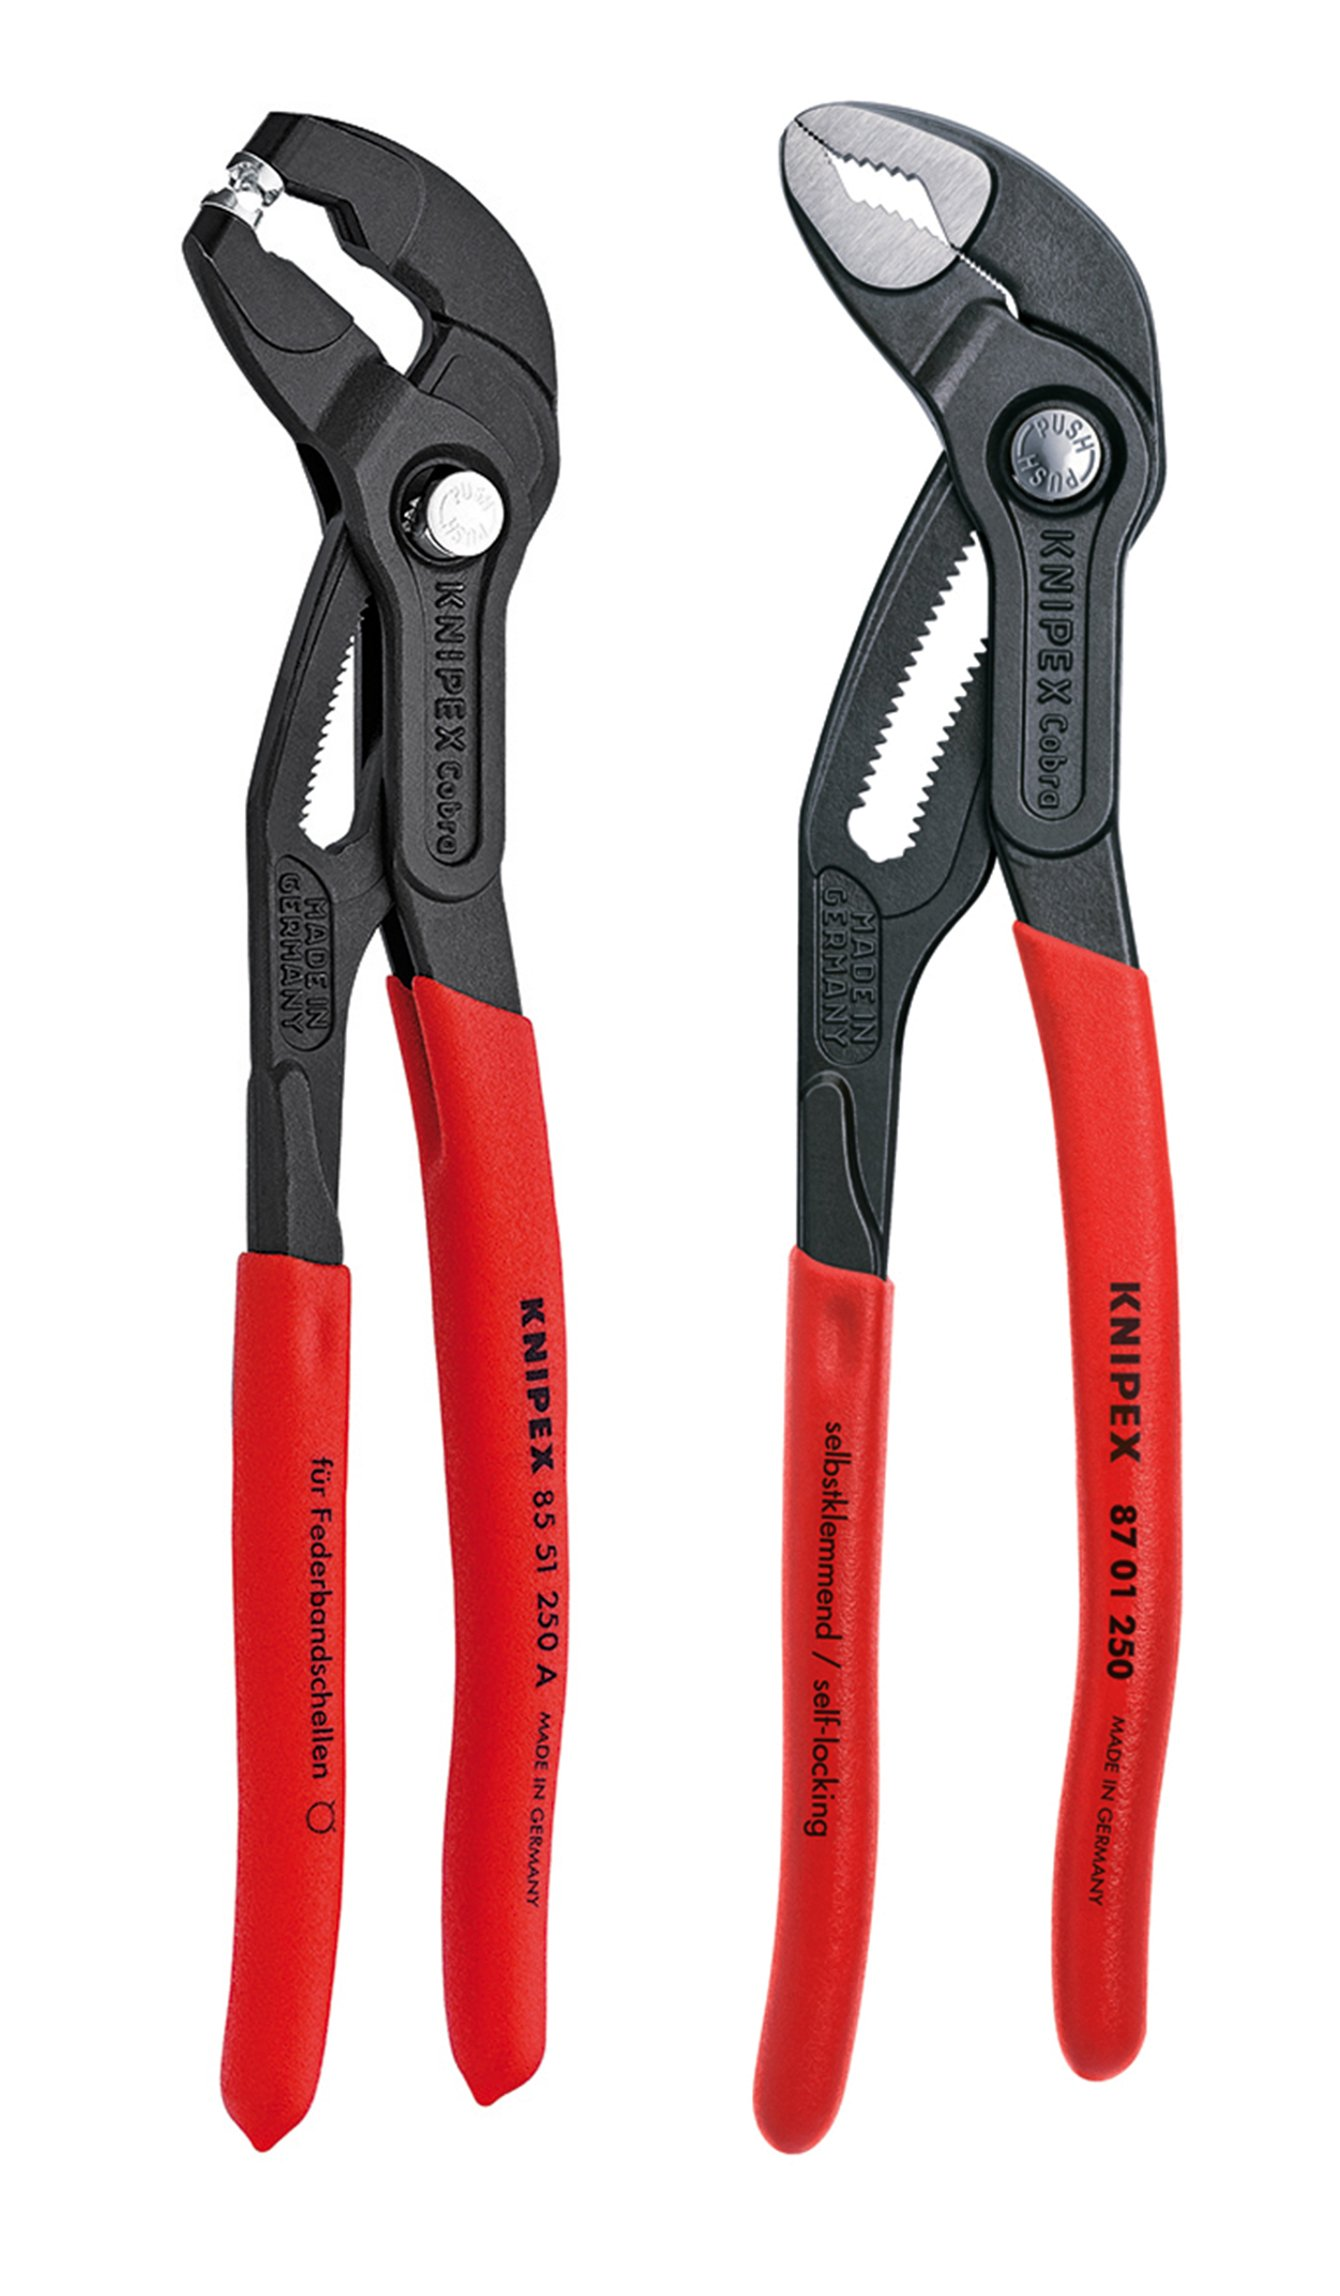 Knipex Tools 9K 00 80 104 US 10'' Cobra and Hose Clamp Pliers Set (2 Piece)